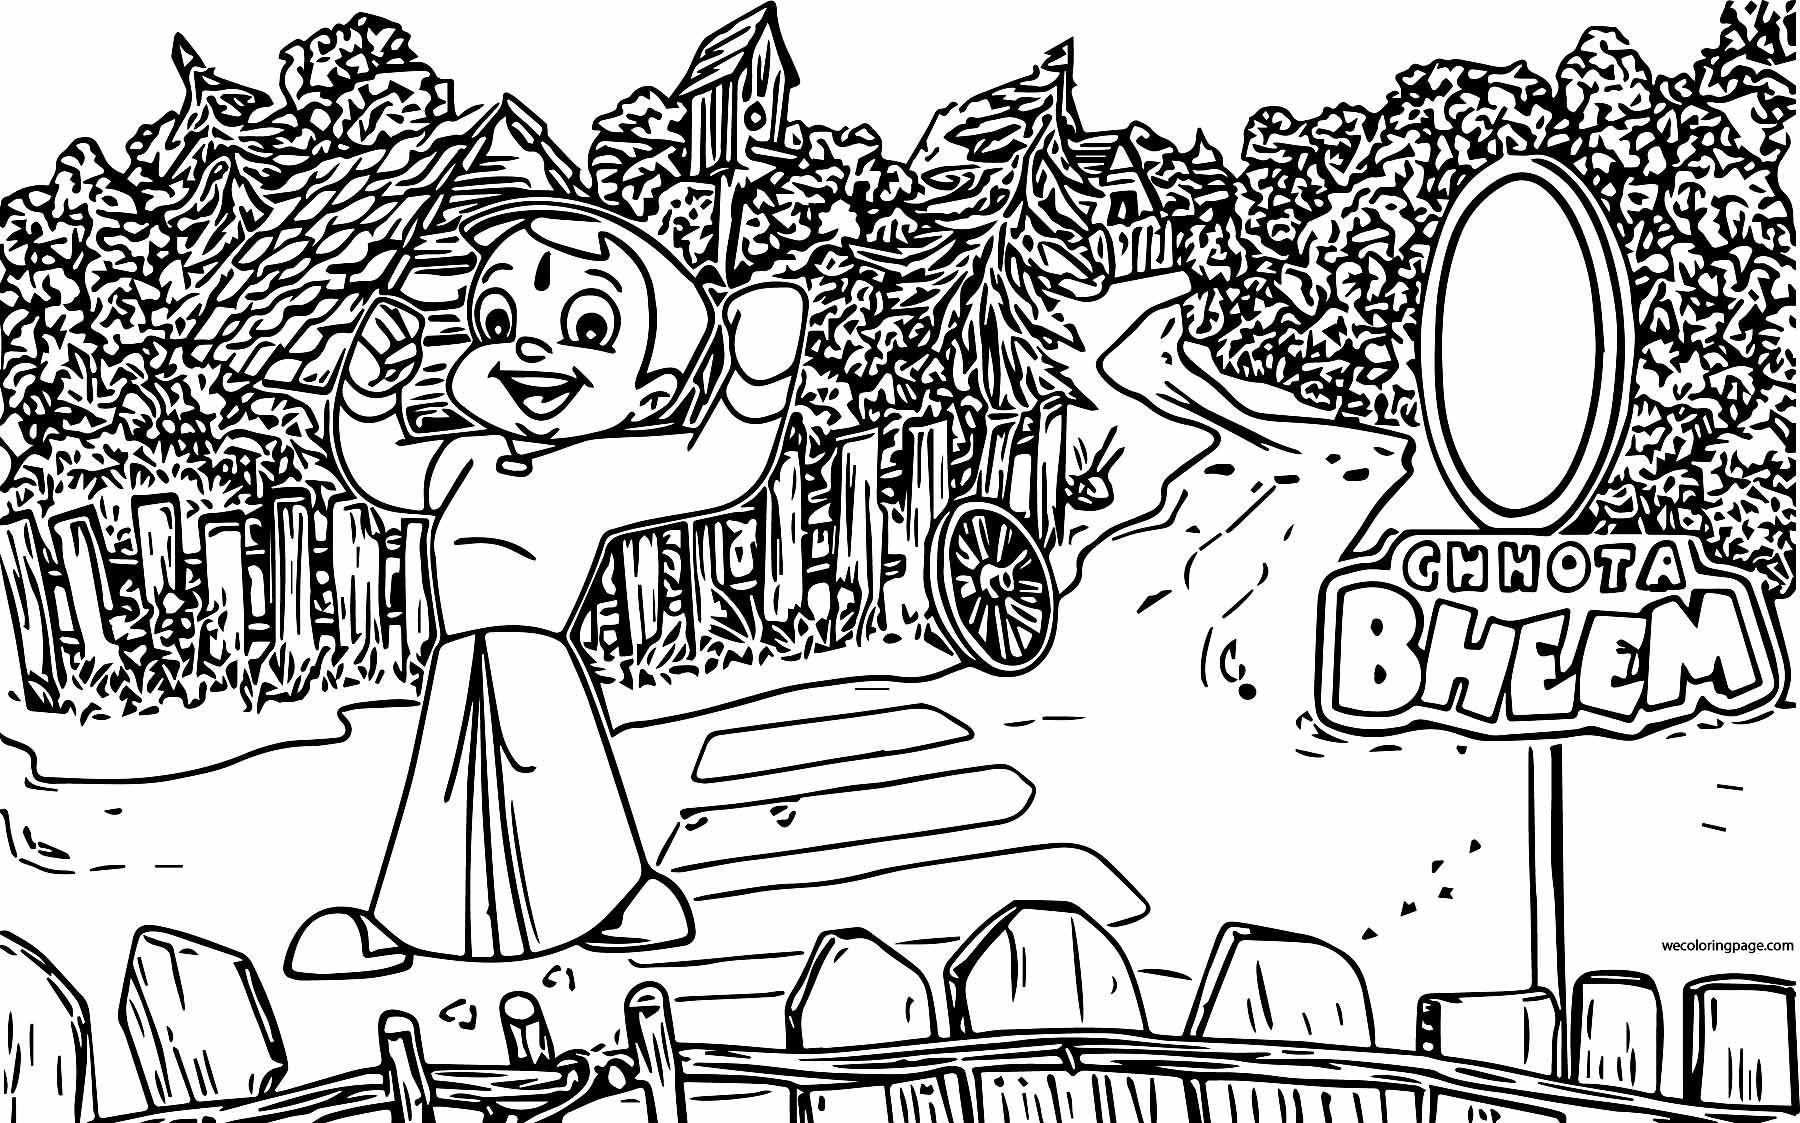 Chhota Bheem Coloring Page 65 In The Village I Am Power Chhota Bheem Coloring